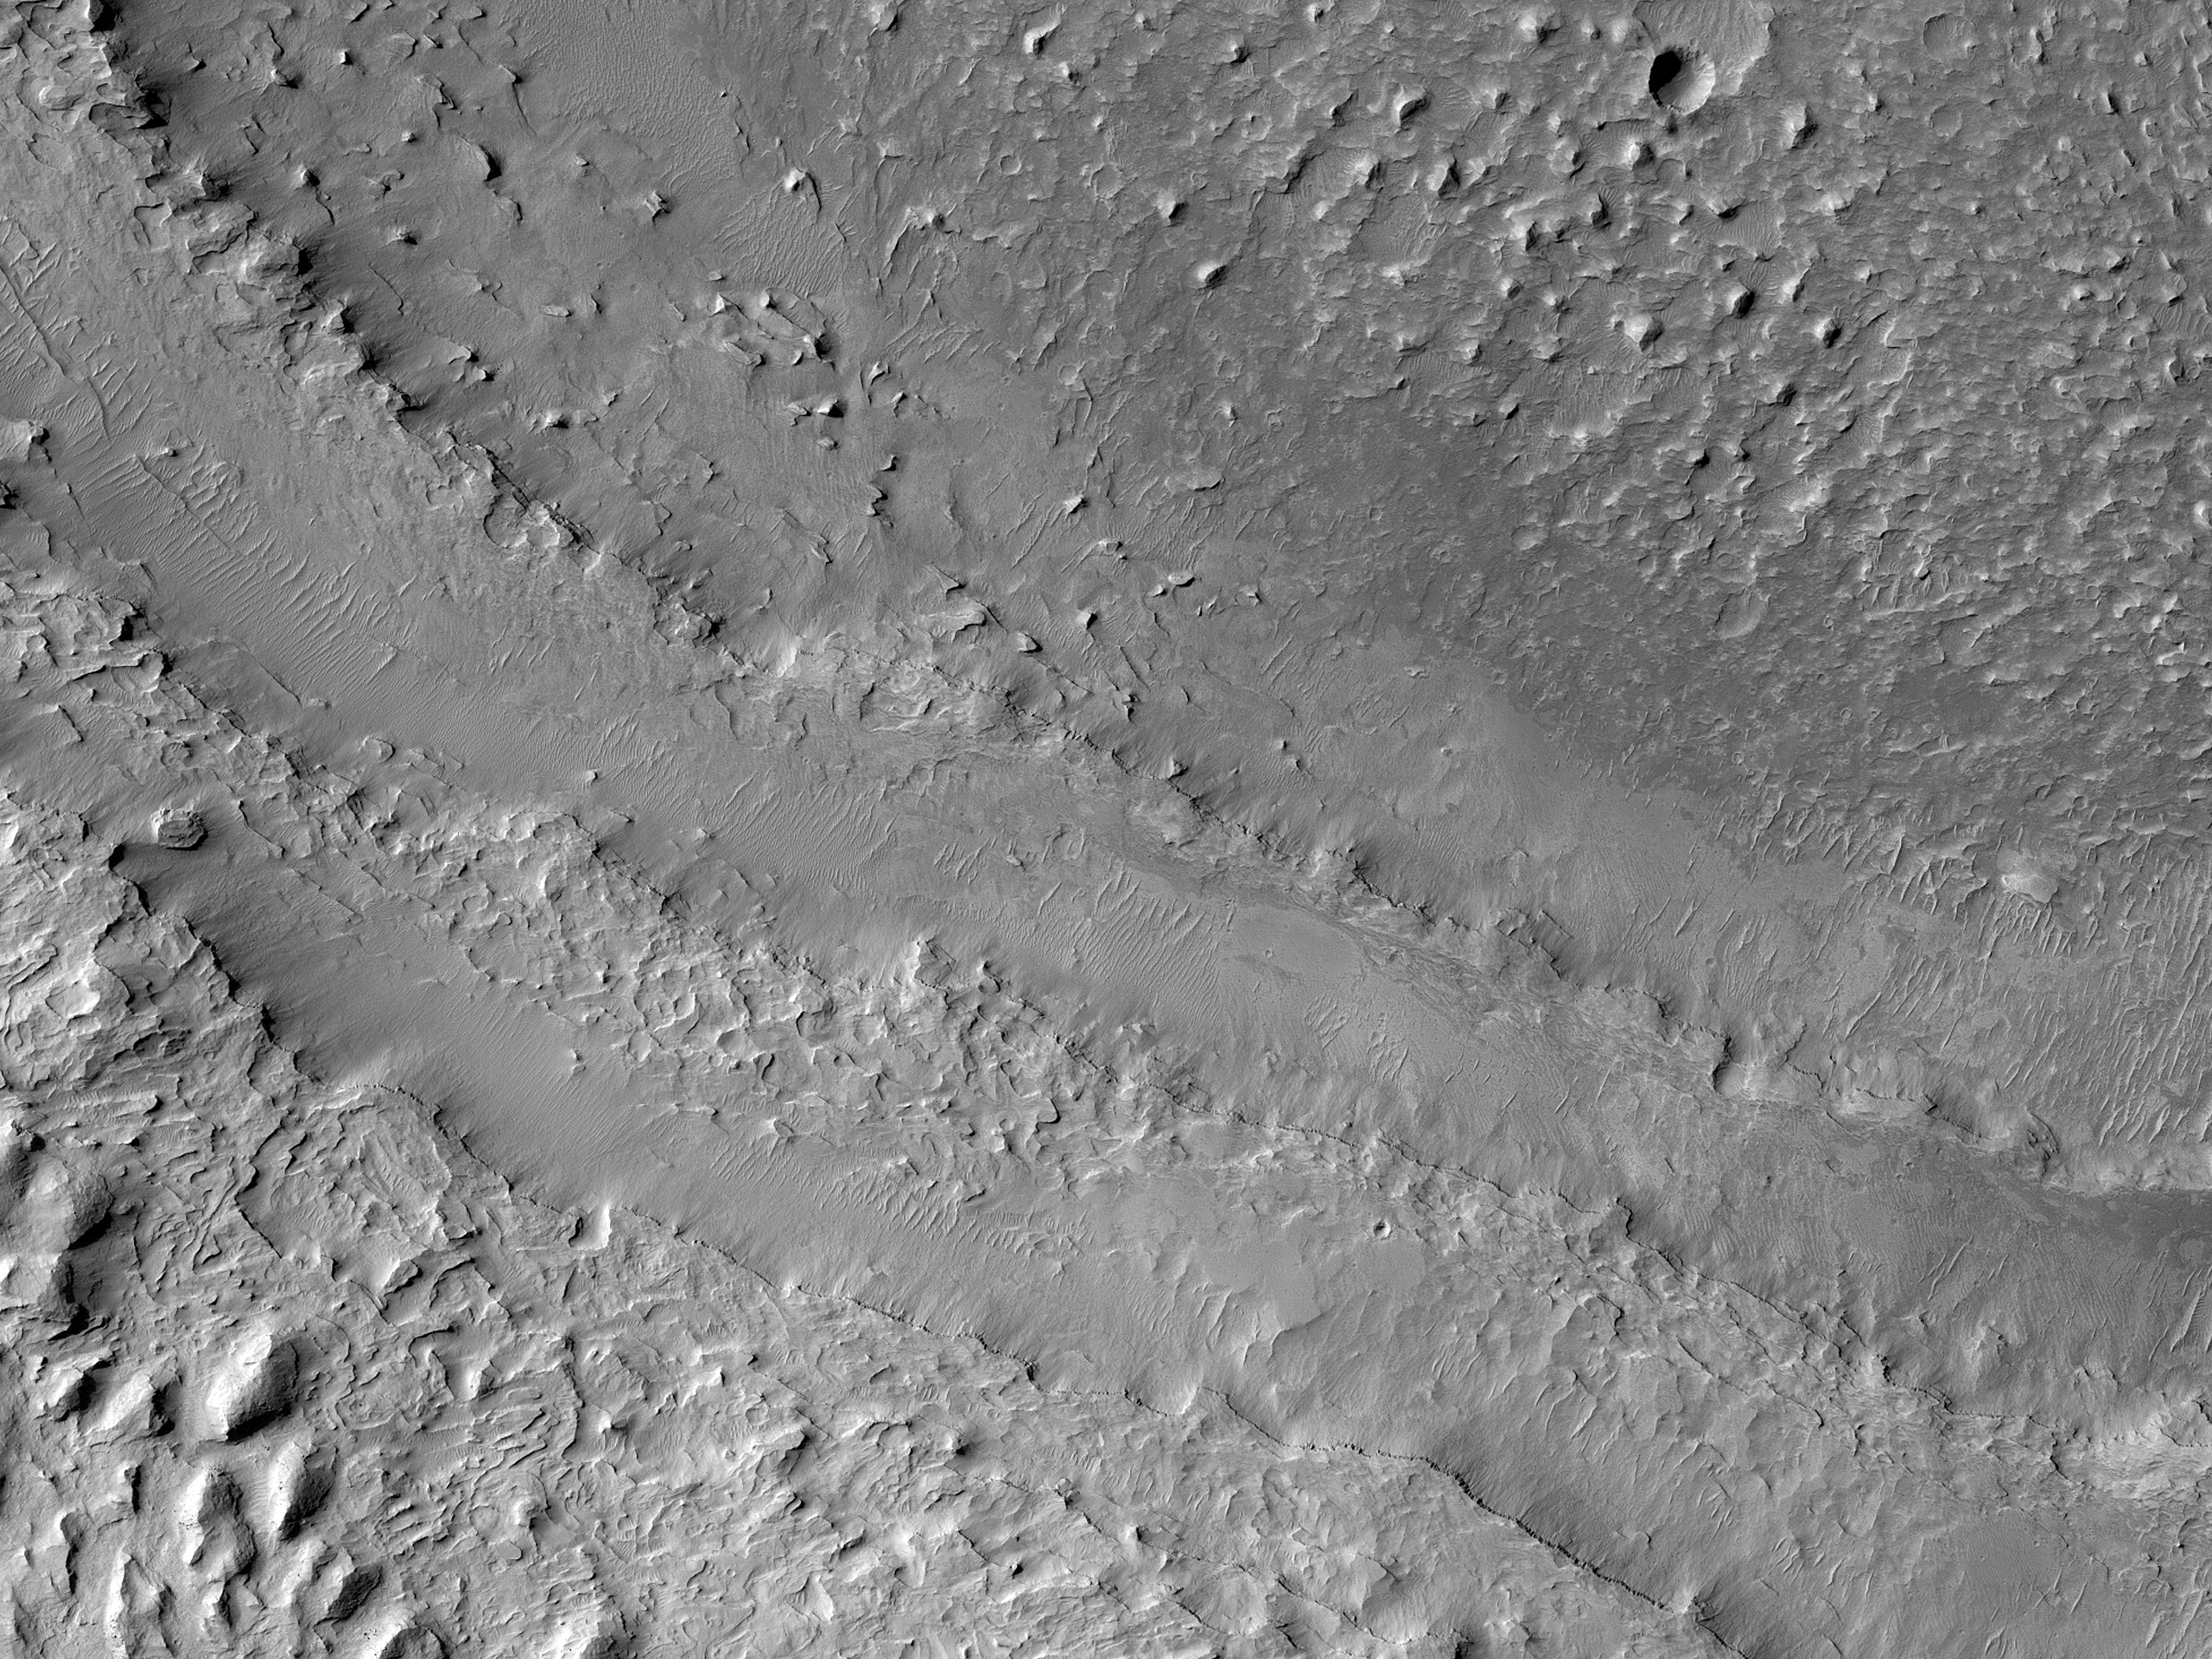 Layering in the Medusae Fossae Formation